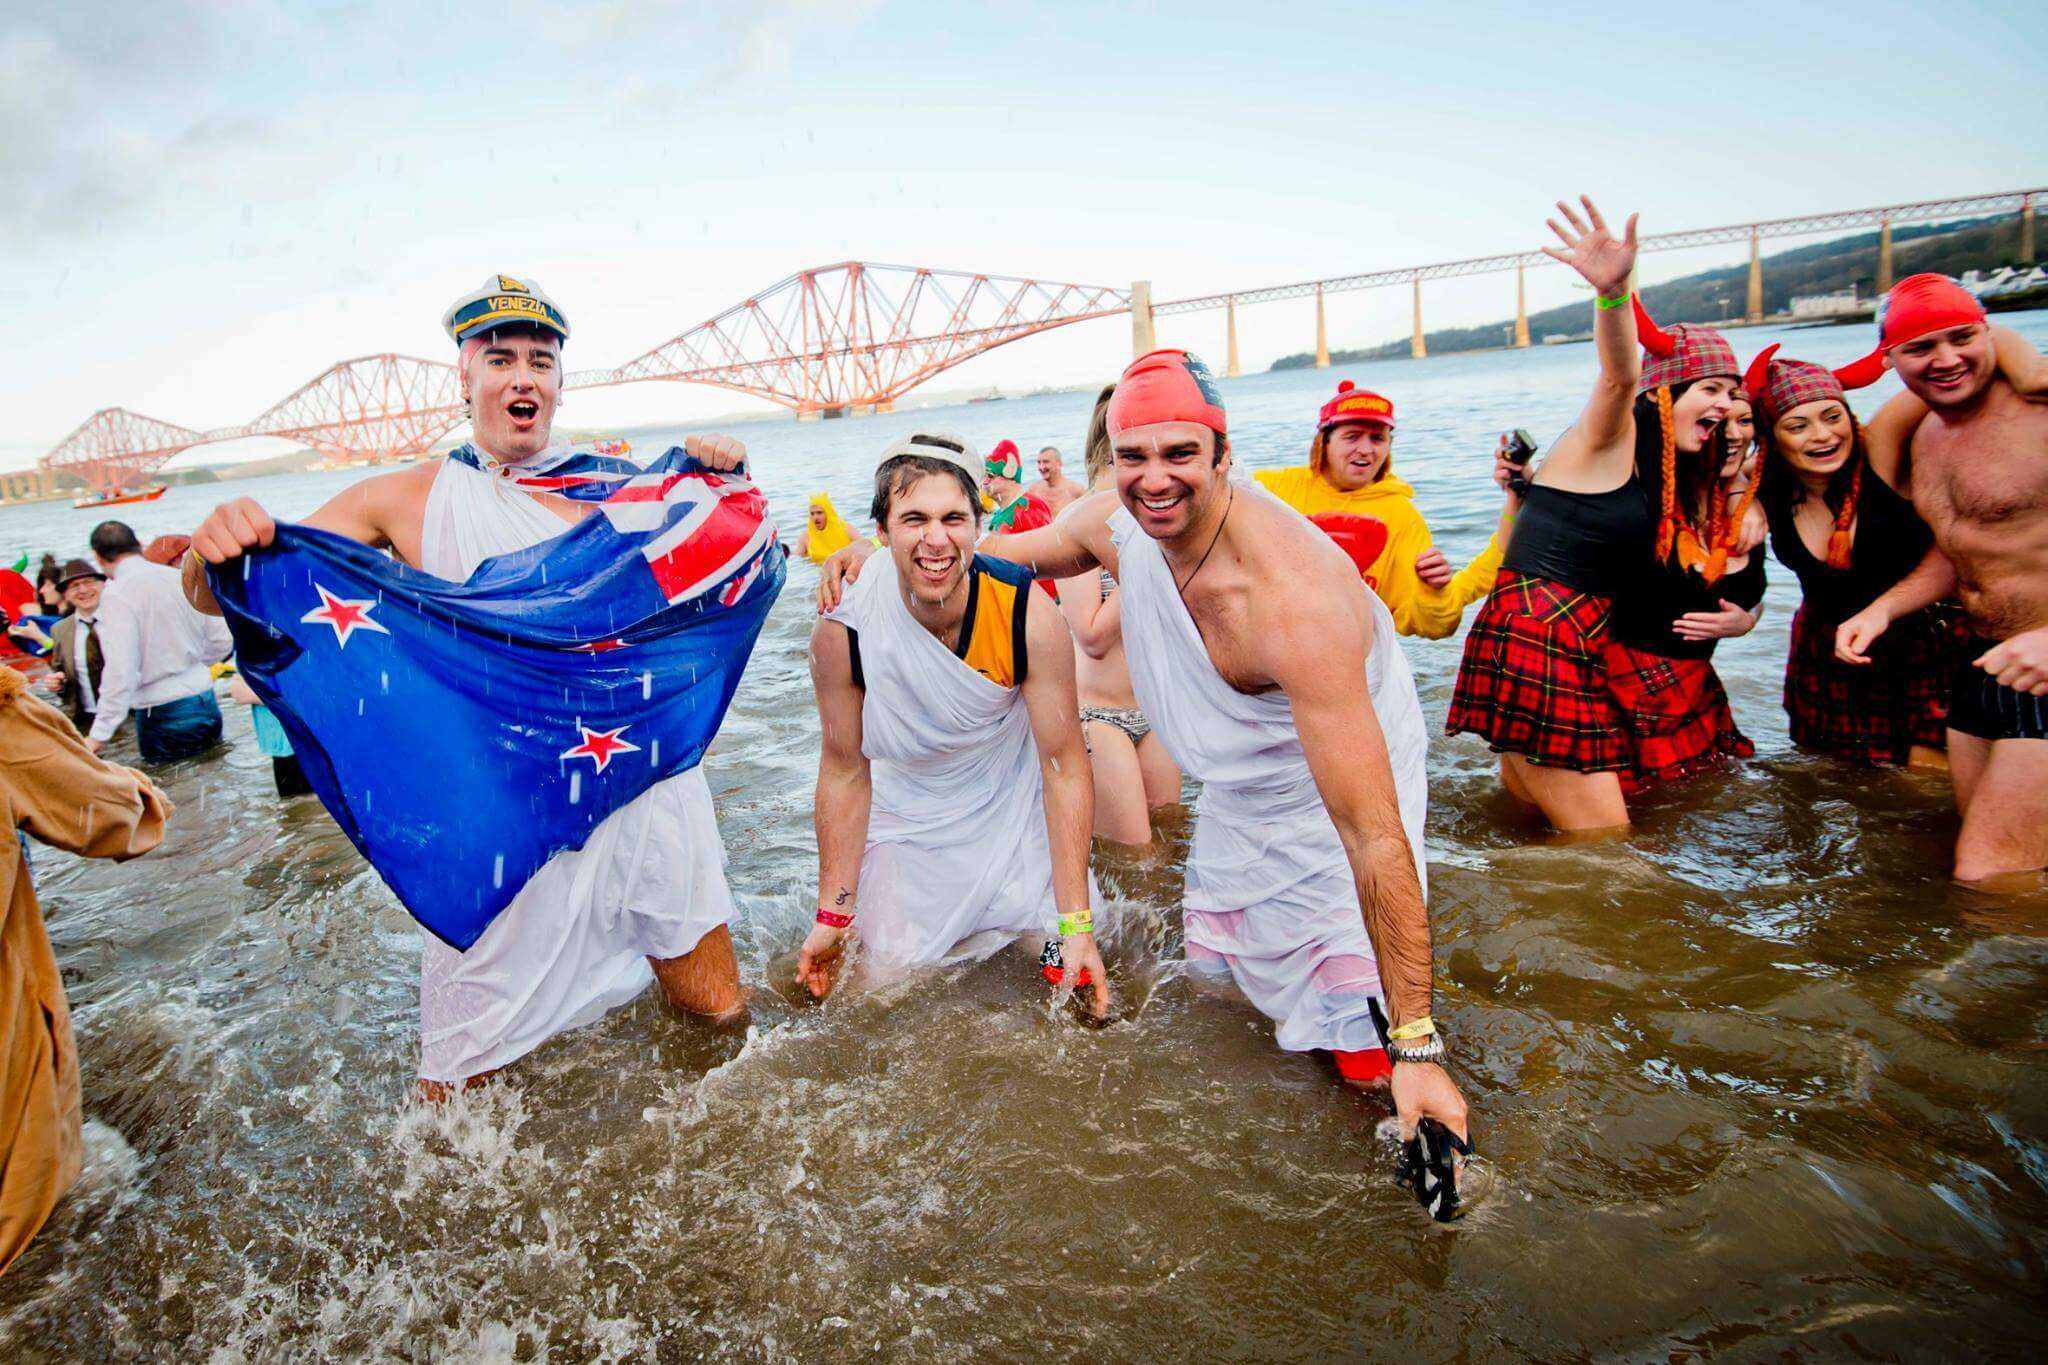 Ring in the New Year with a Splash at the Annual Loony Dook!